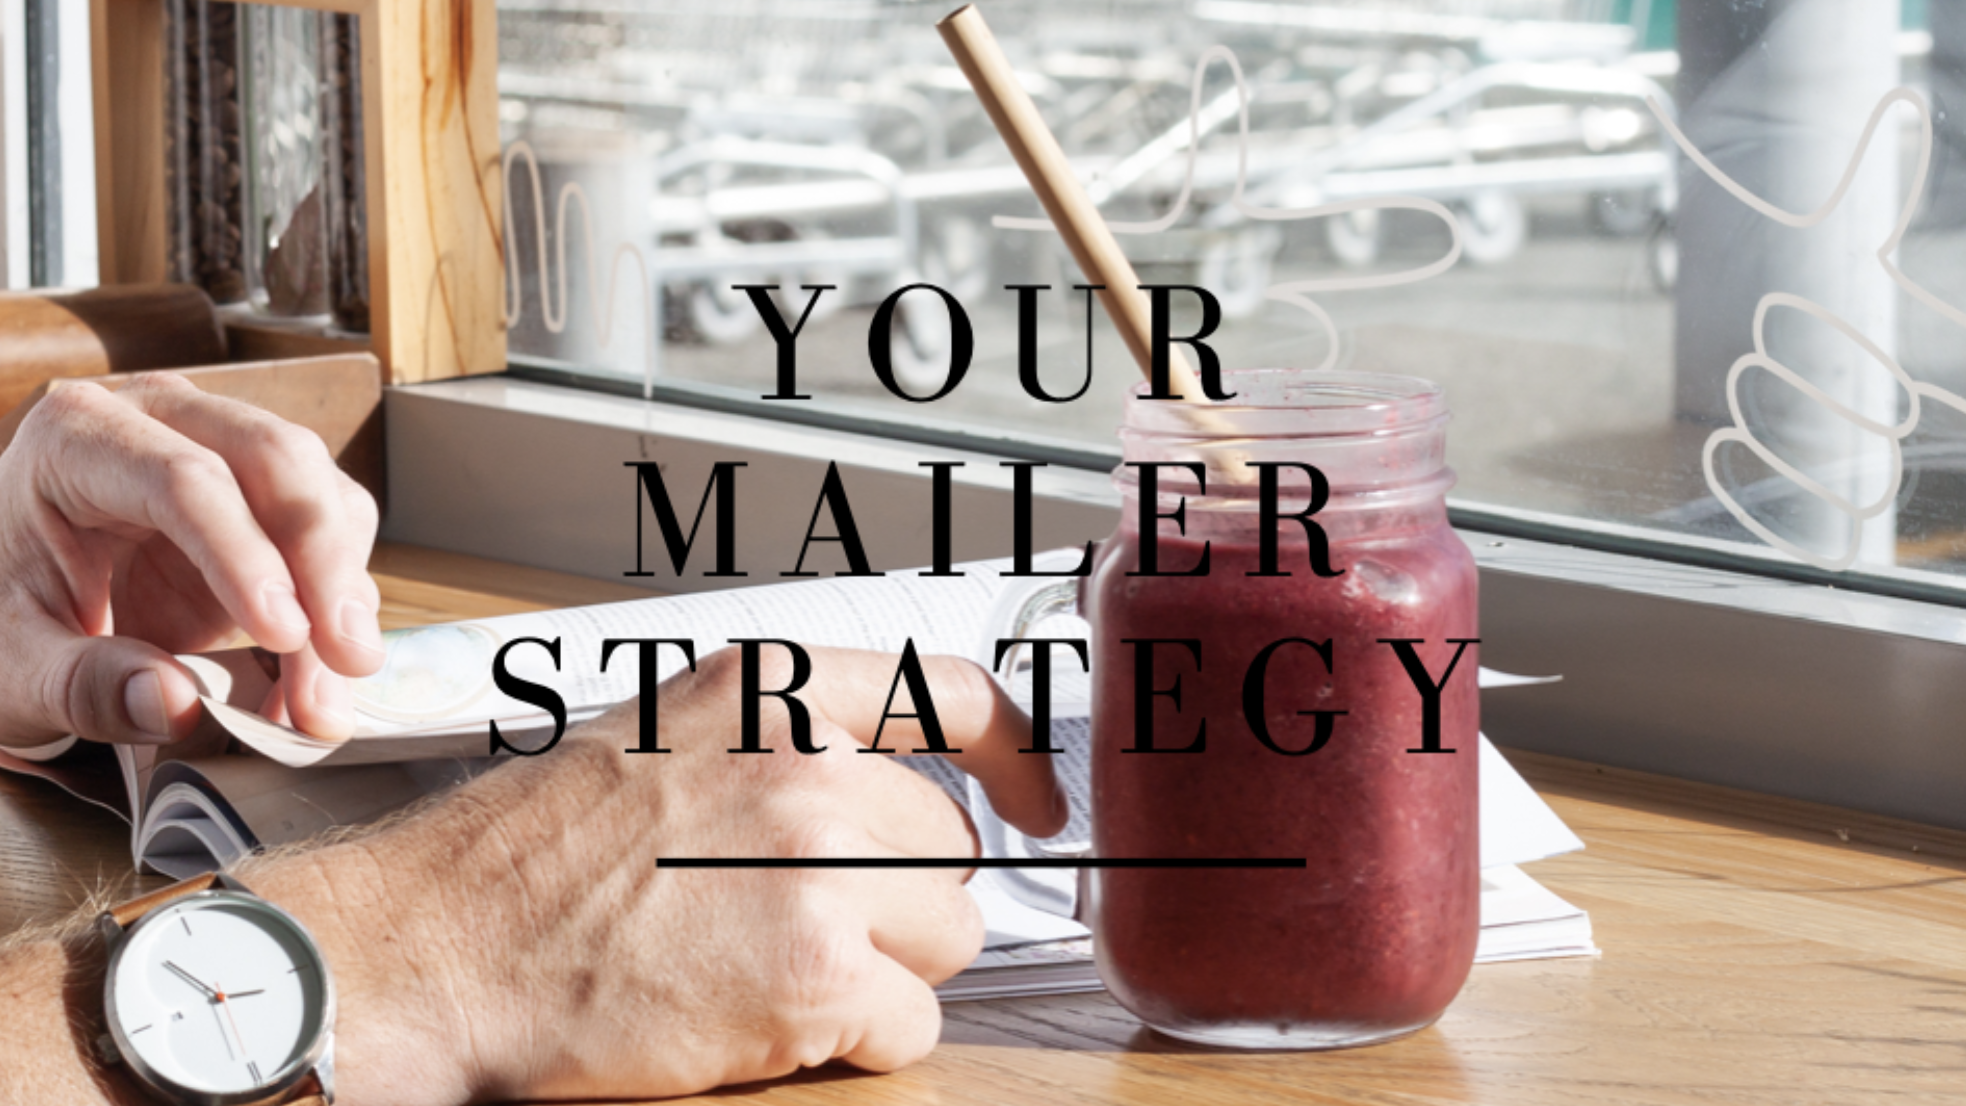 Shout-and-co-your-mailer-strategy